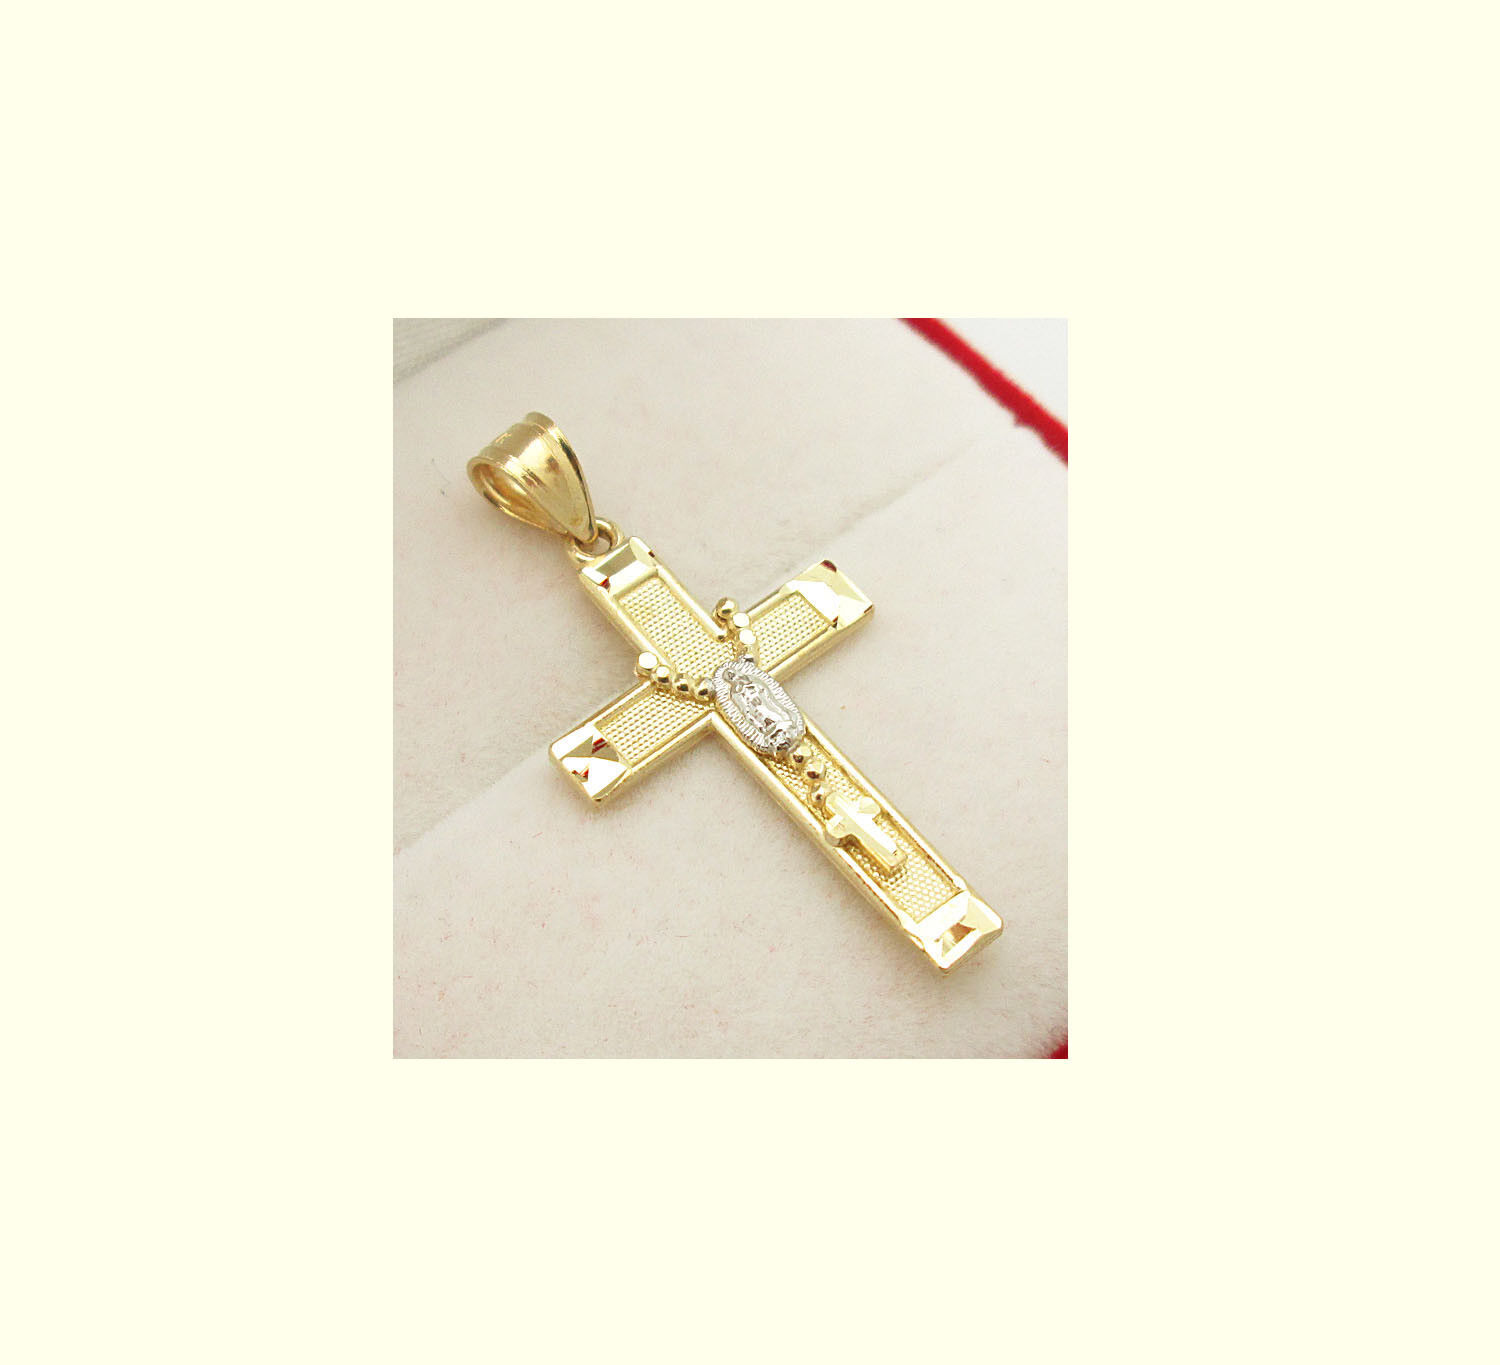 10k Two Tone Gold Rosary Cross Pendant Guadalupe Cross 1.2 inch